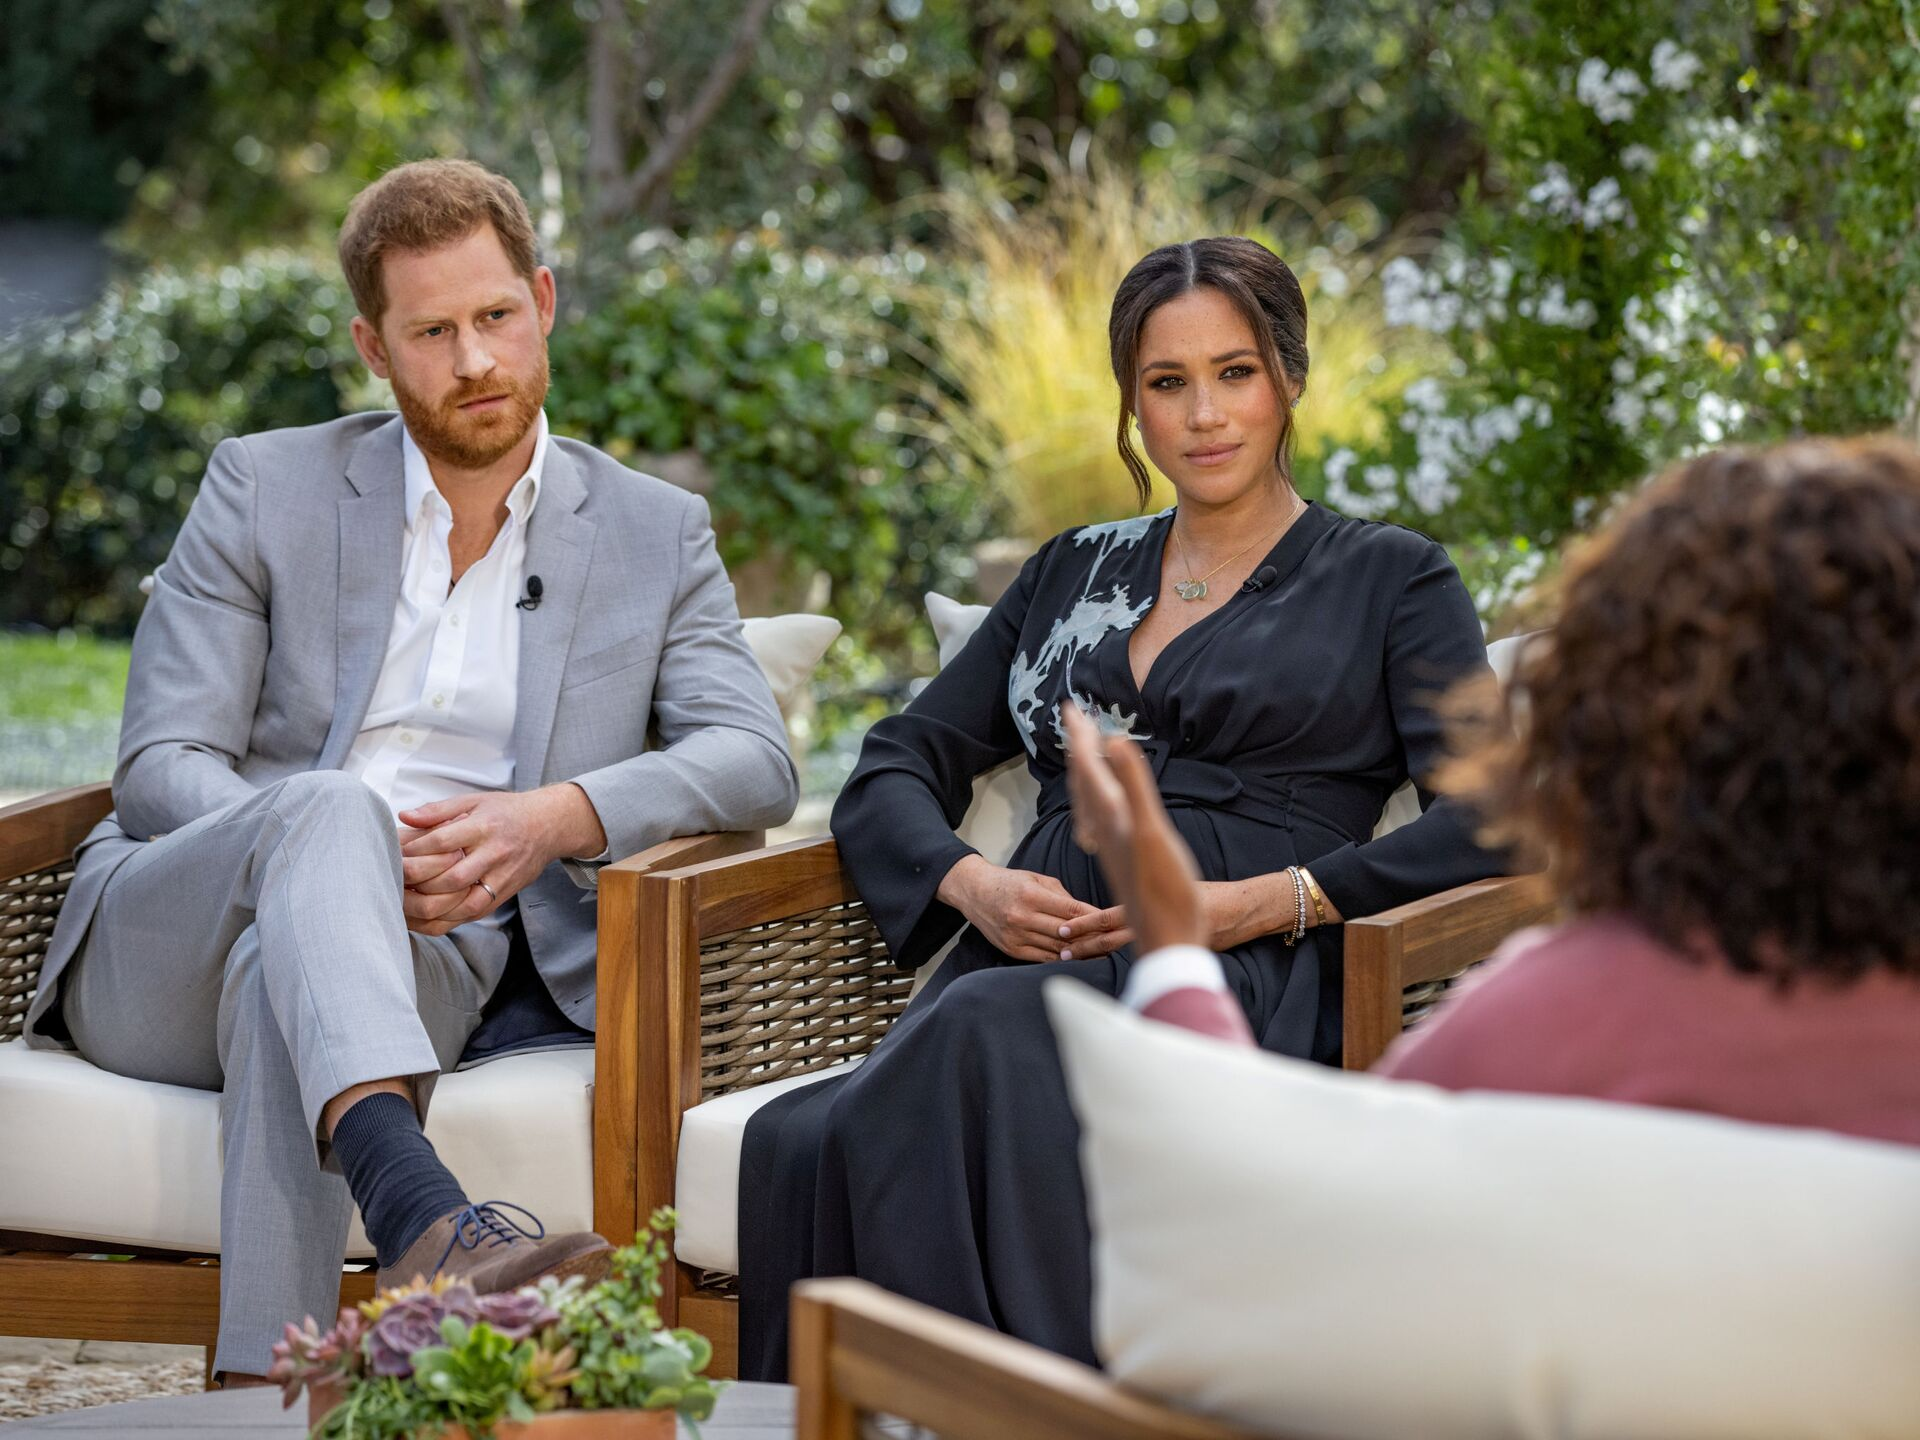 Suicidal Thoughts, 'Racism' in Royal Family and More: Harry & Meghan's Bombshell Sit-Down With Oprah - Sputnik International, 1920, 08.03.2021